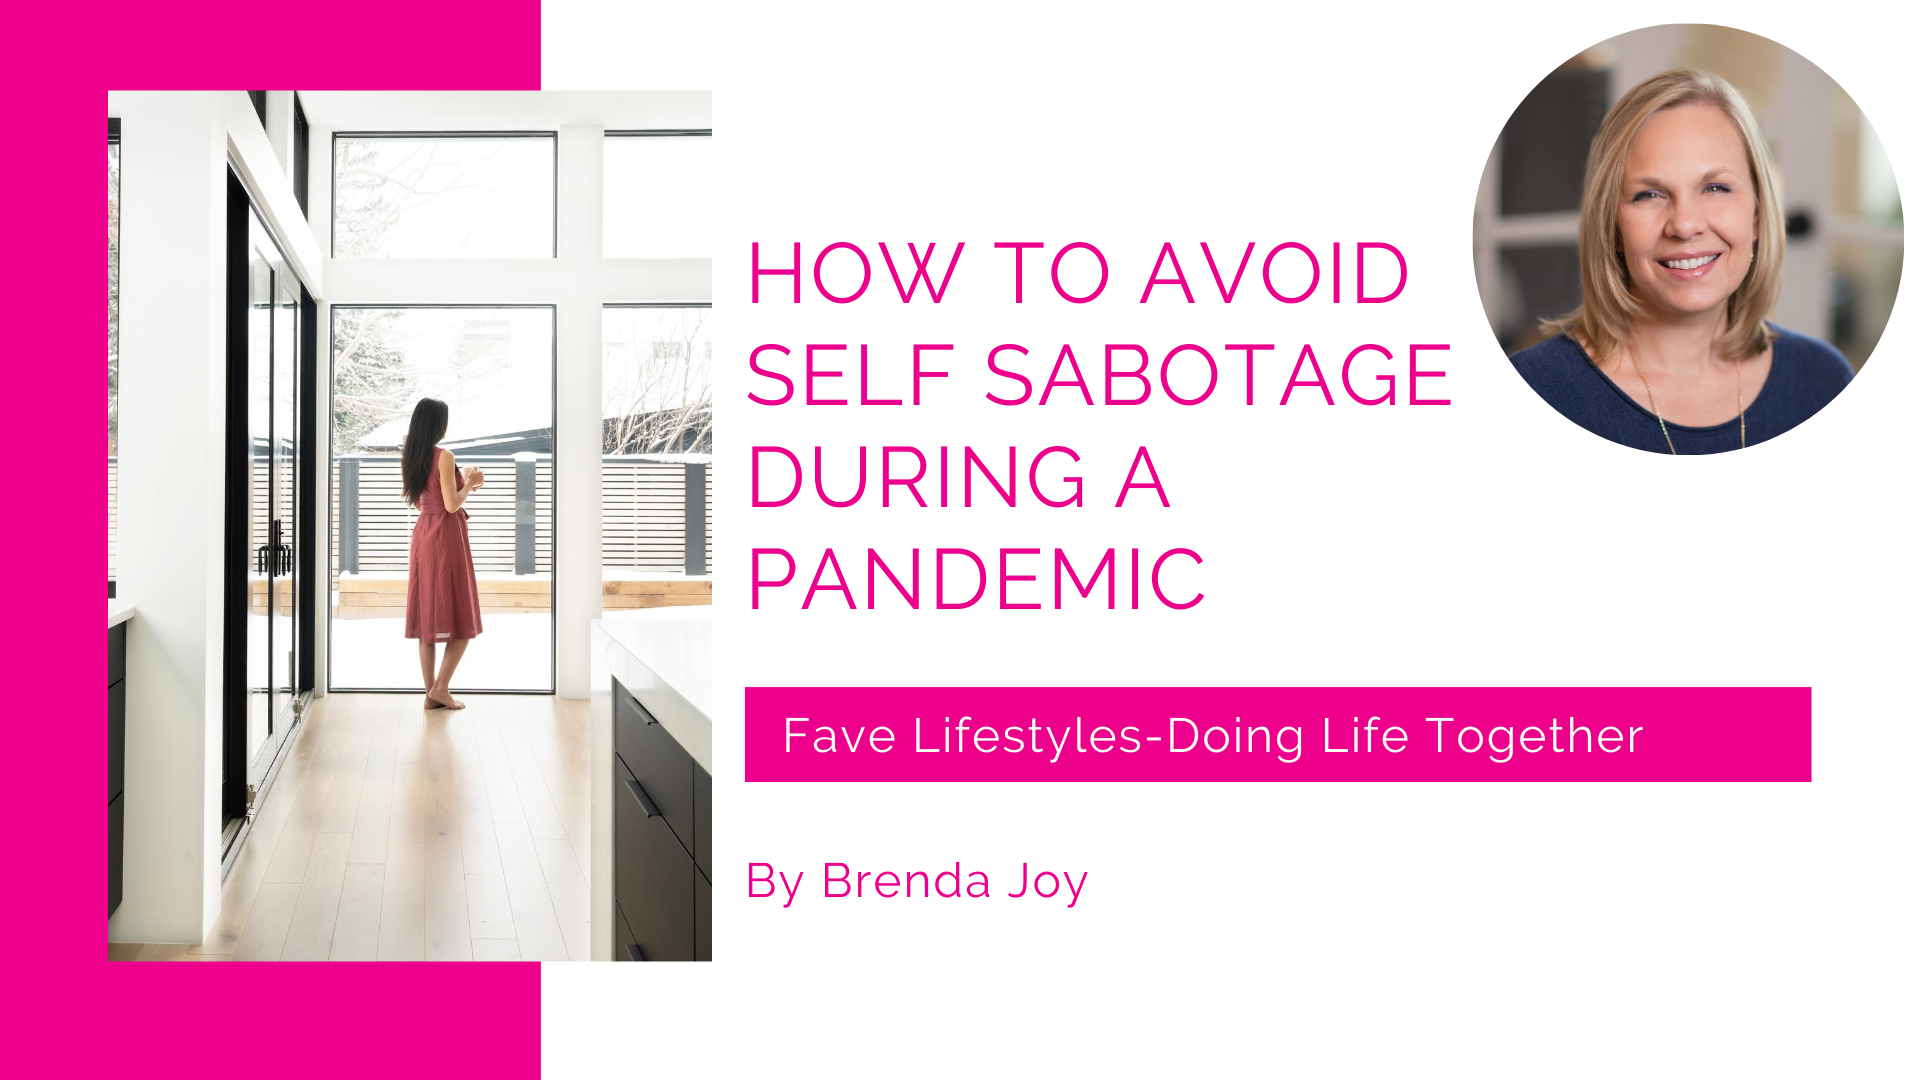 How to Avoid Self-Sabotage During A Pandemic